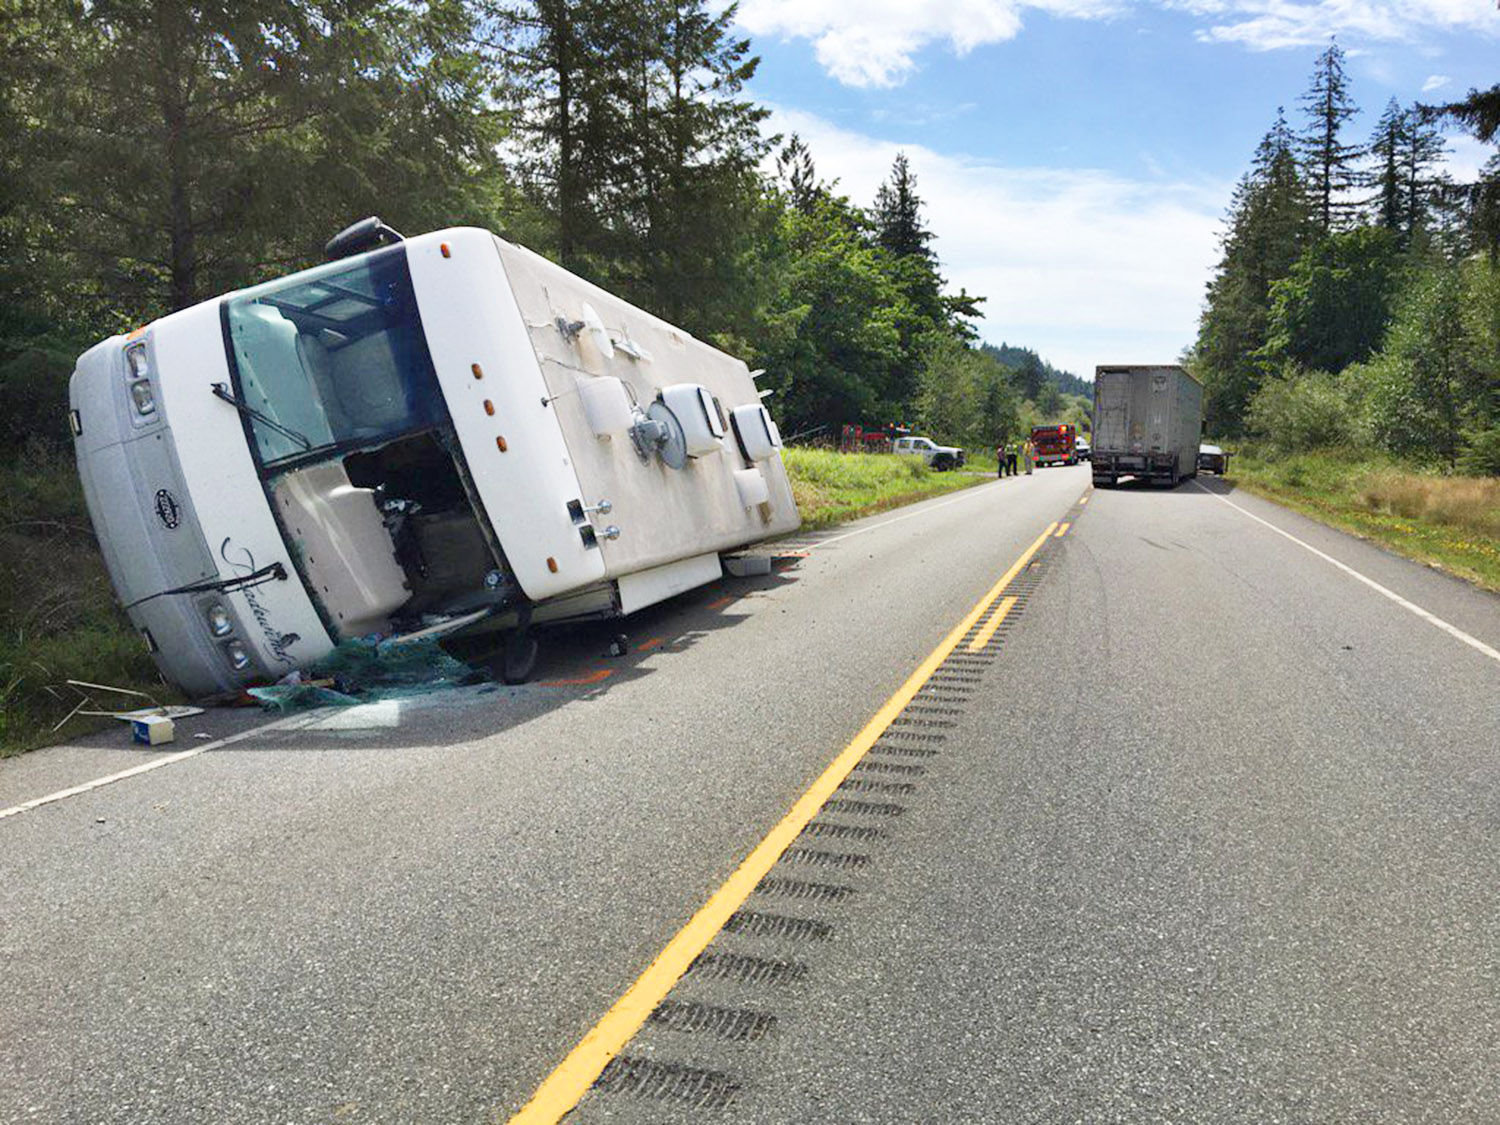 The driver of this Tradewinds RV made evasive maneuvers Aug. 15 after a tractor trailer hauling a livestock trailer south on U.S. Highway 101, initially failing to see a sedan slowing ahead, braked and steered into the northbound lane. That forced the RV driver to take action to avoid collision, which caused the RV to roll over on its driver's side, according to the Washington State Patrol. Photo courtesy East Jefferson Fire Rescue